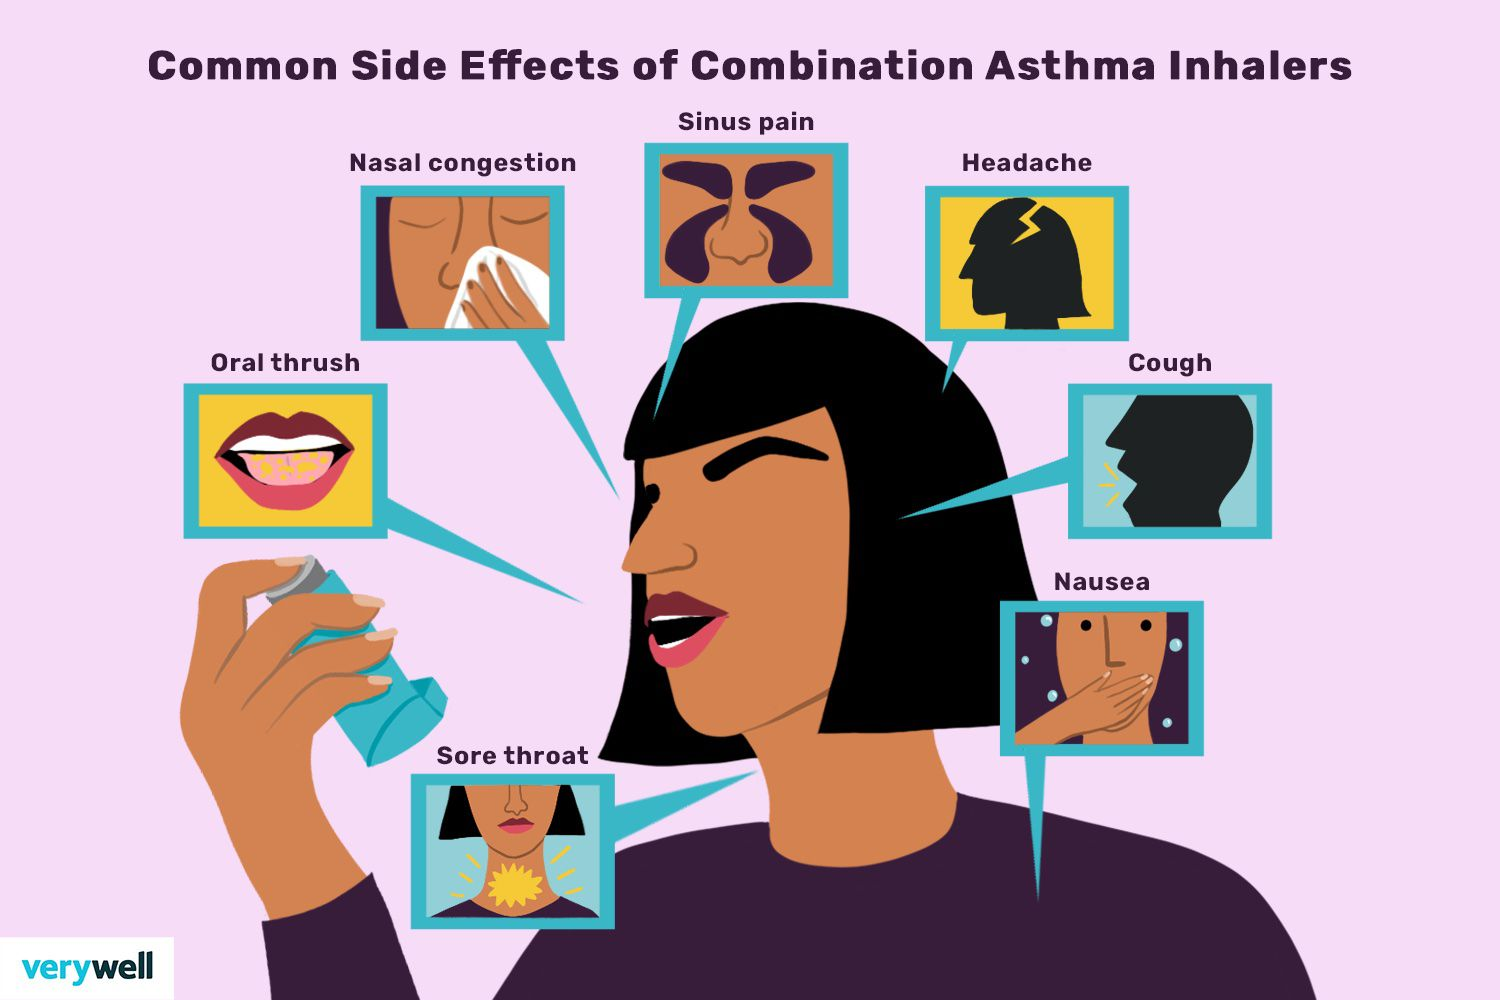 Common Side Effects of Combination Asthma Inhalers